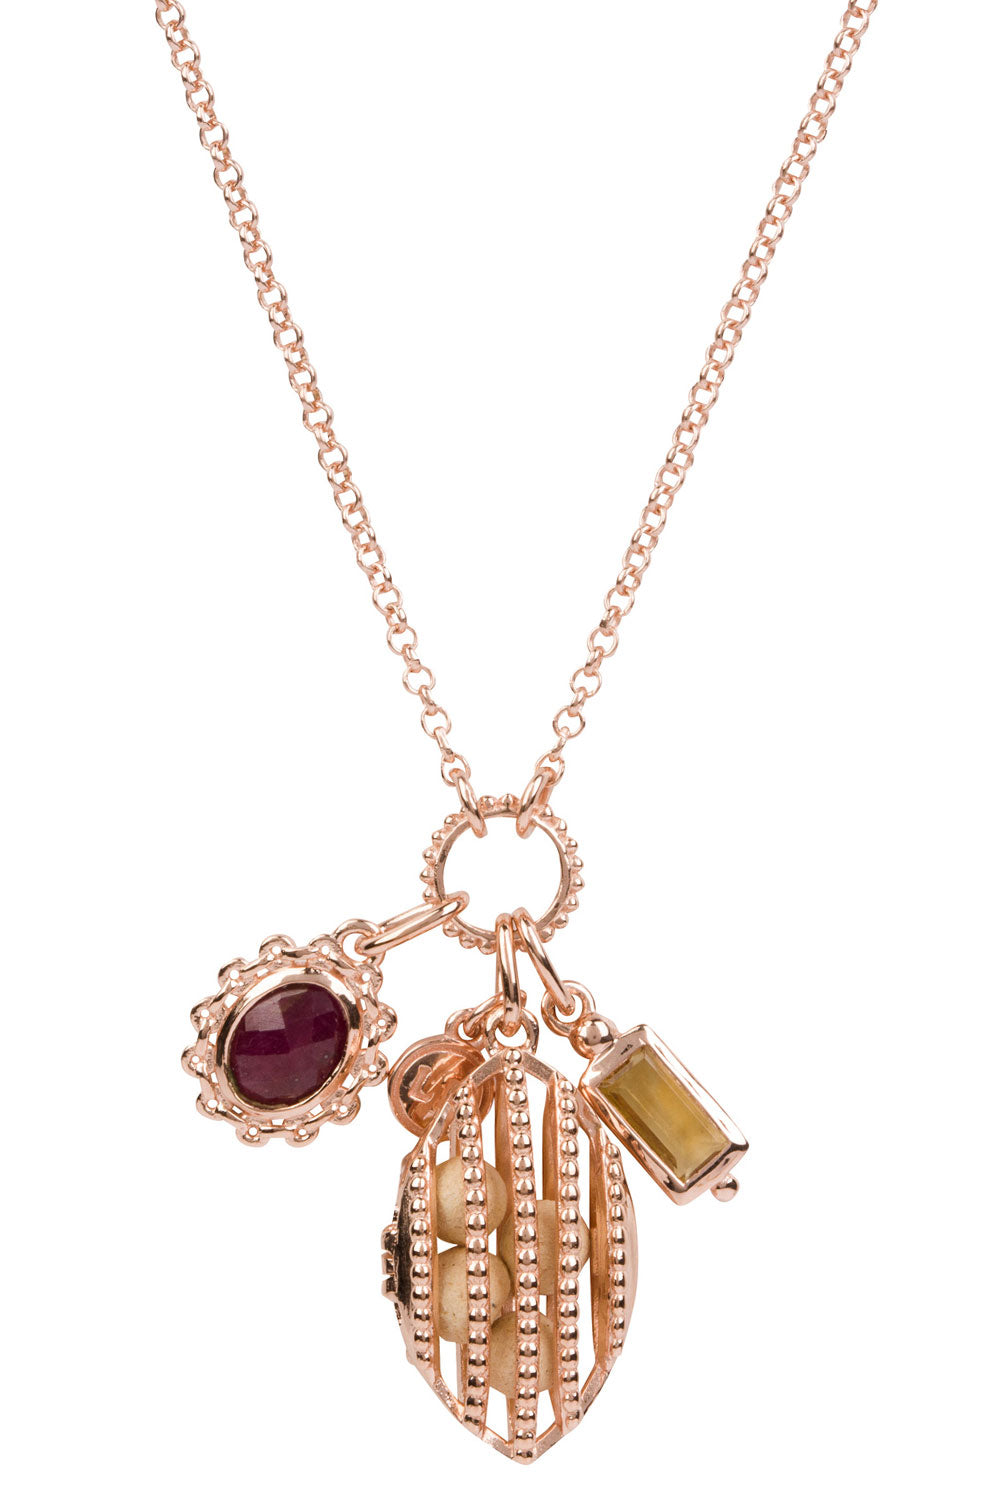 Crest Charm Necklace - Rose Gold